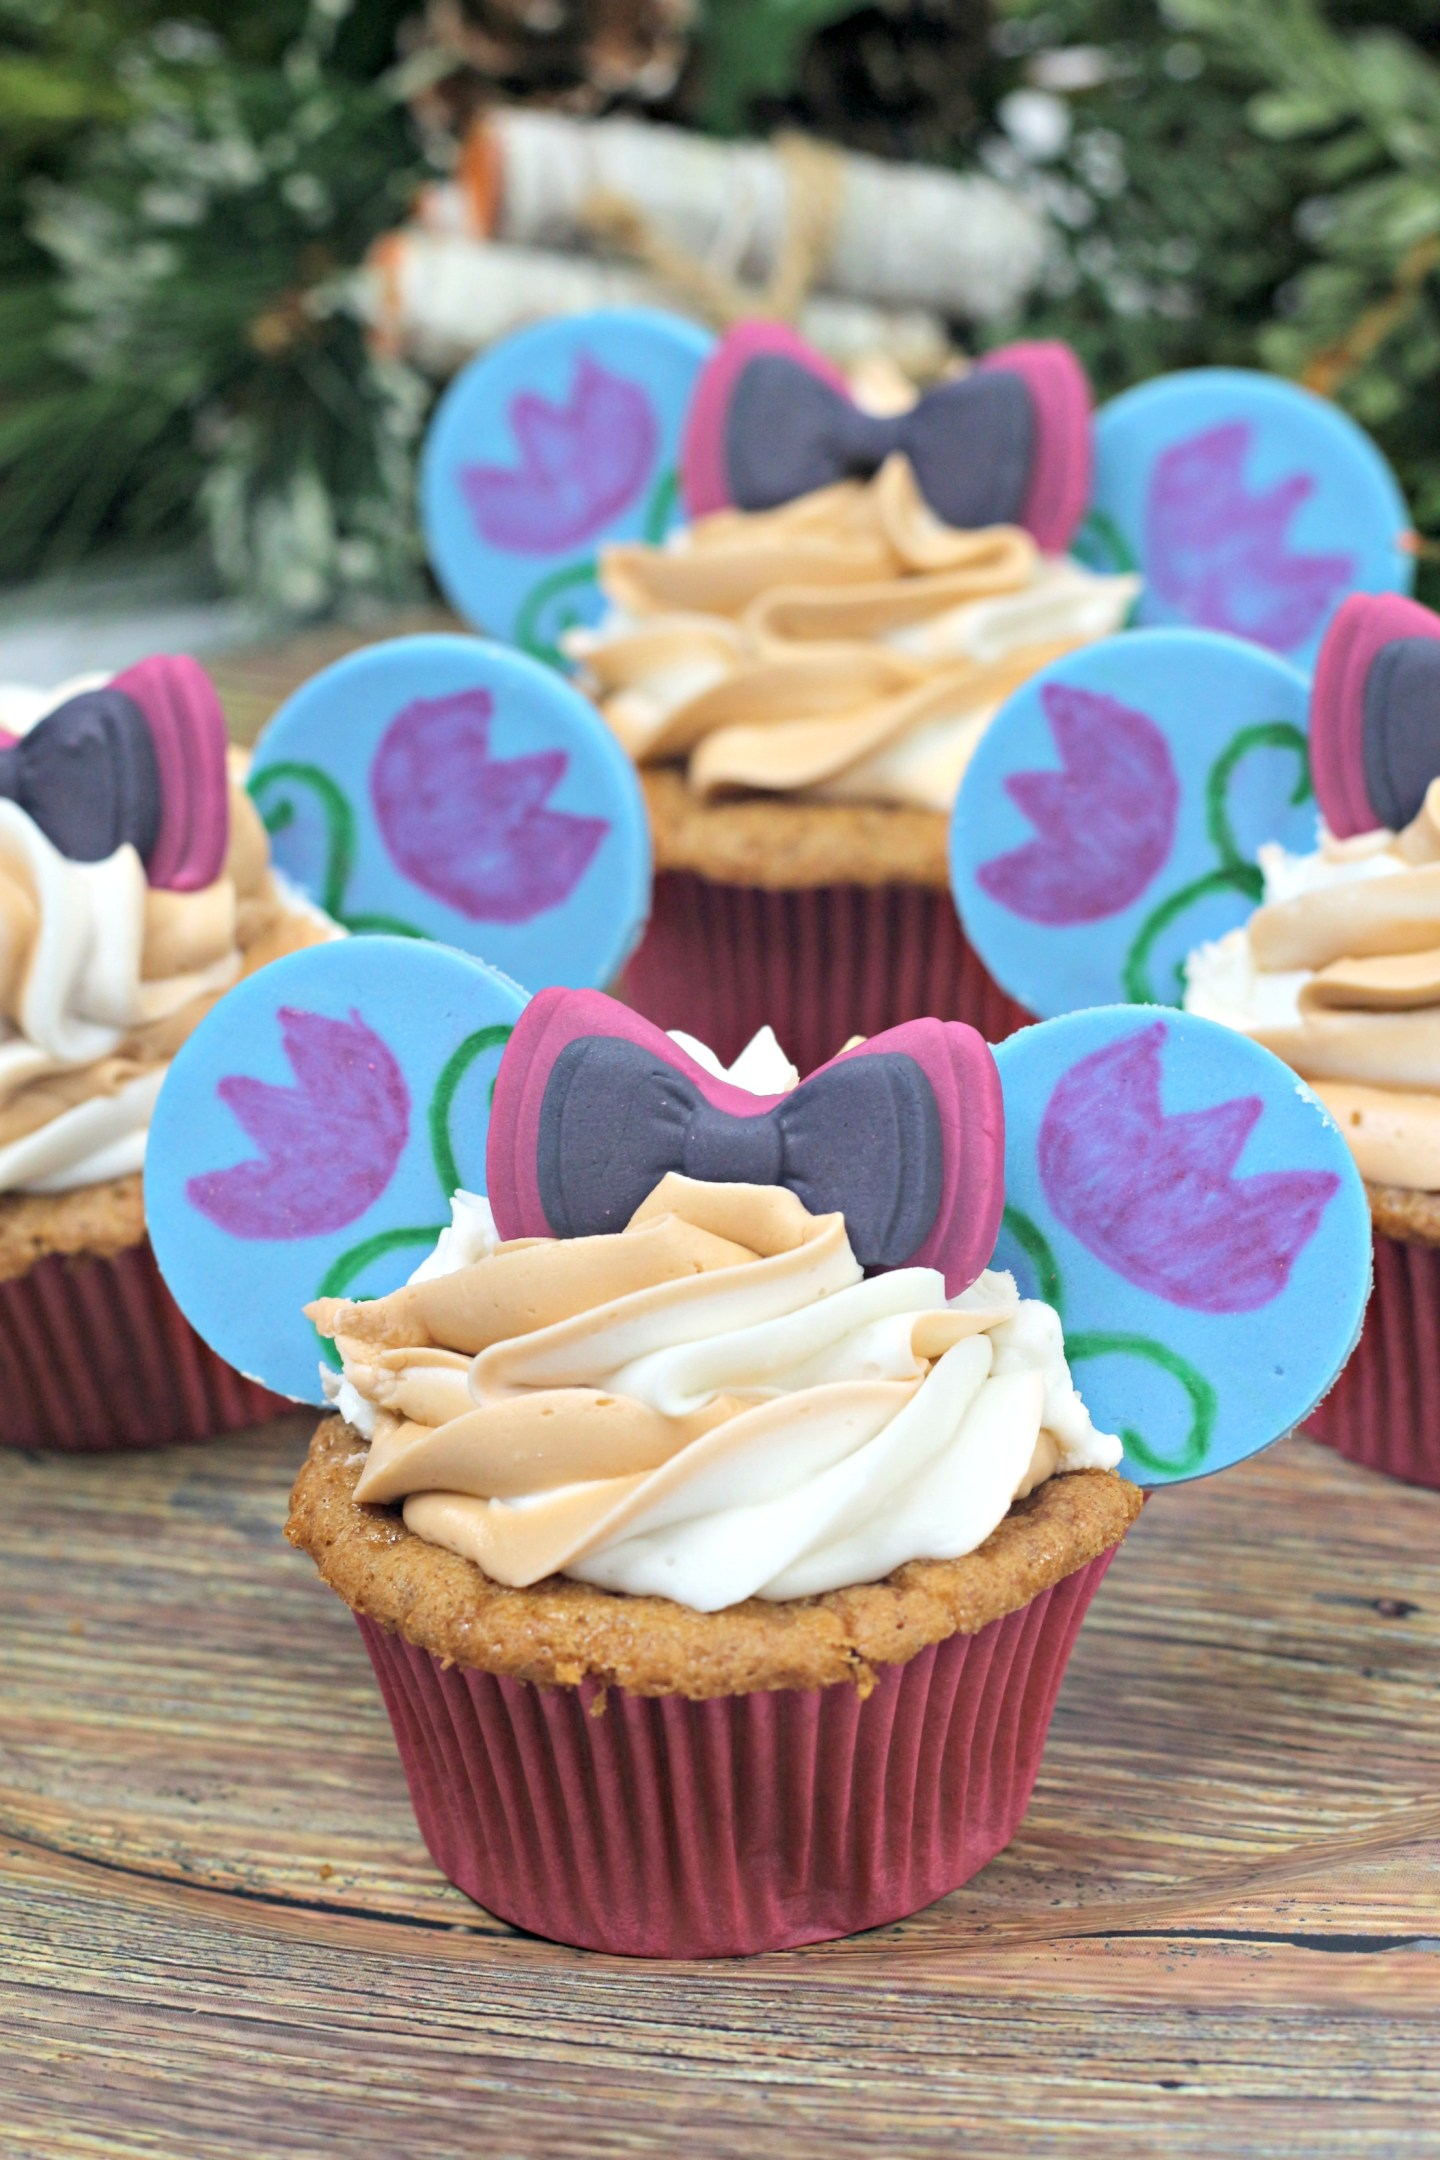 Anna Minnie Mouse Cupcakes